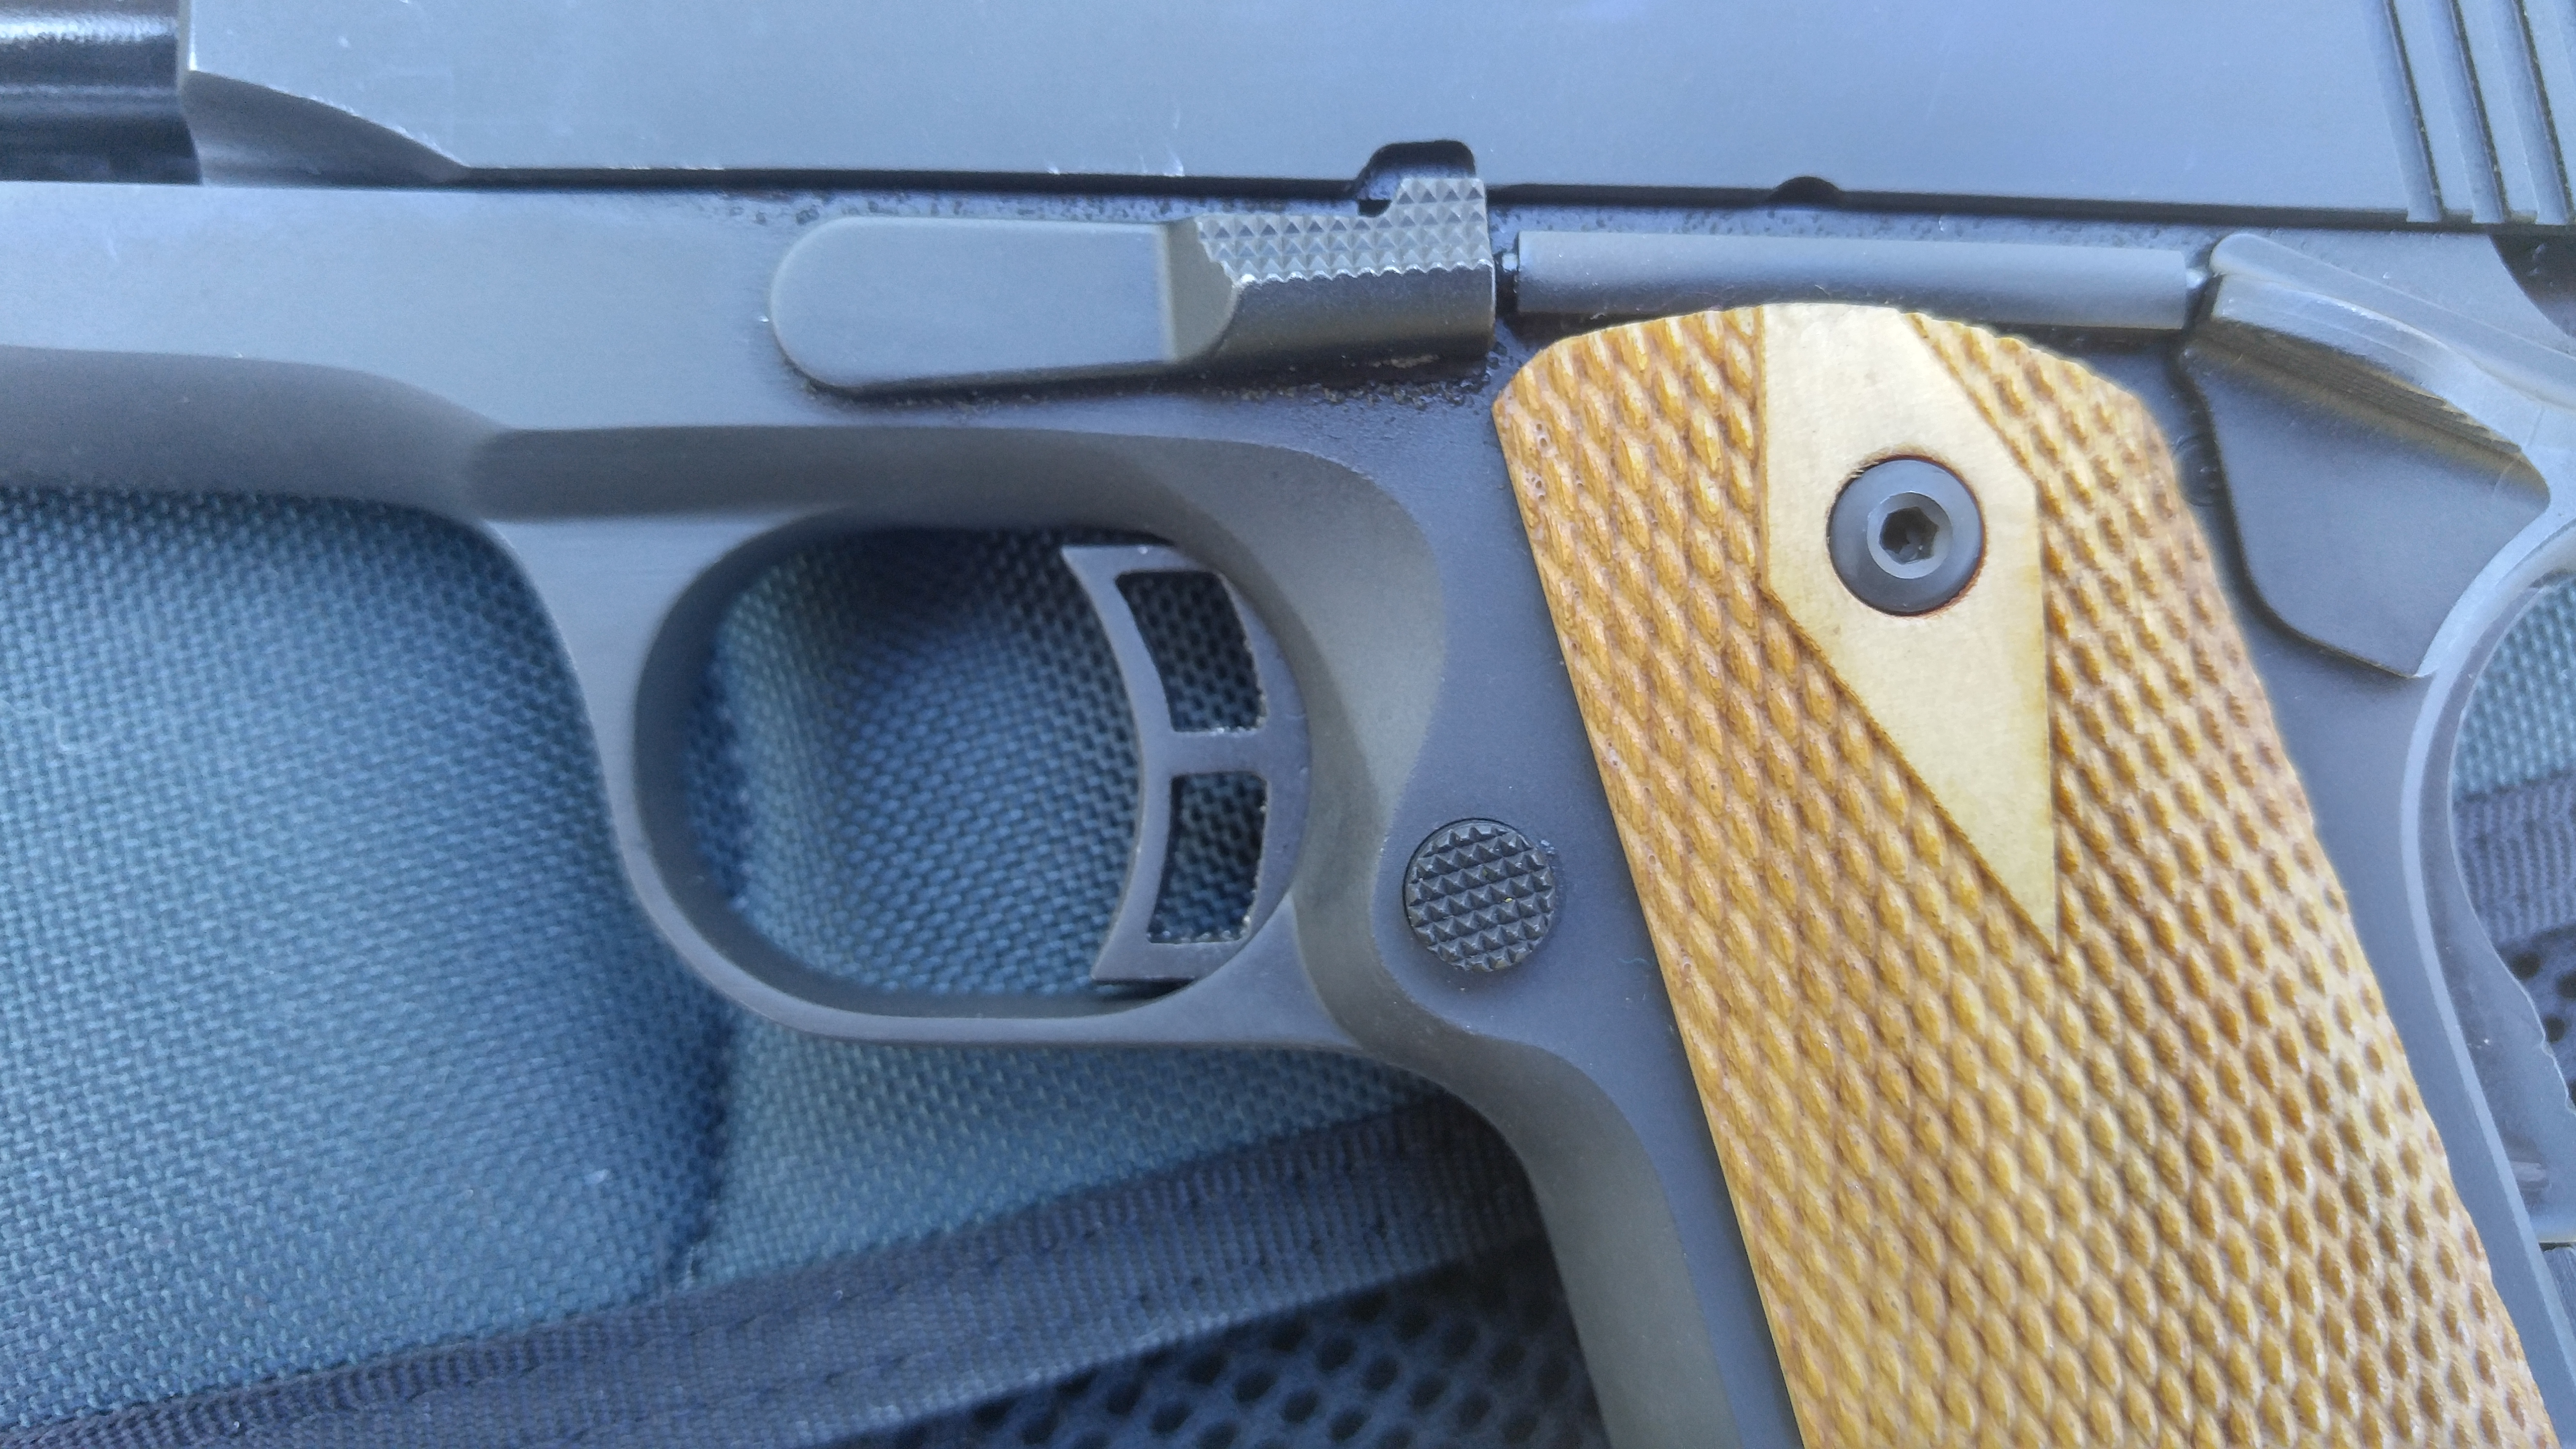 Taylor 1911 Compact 9mm